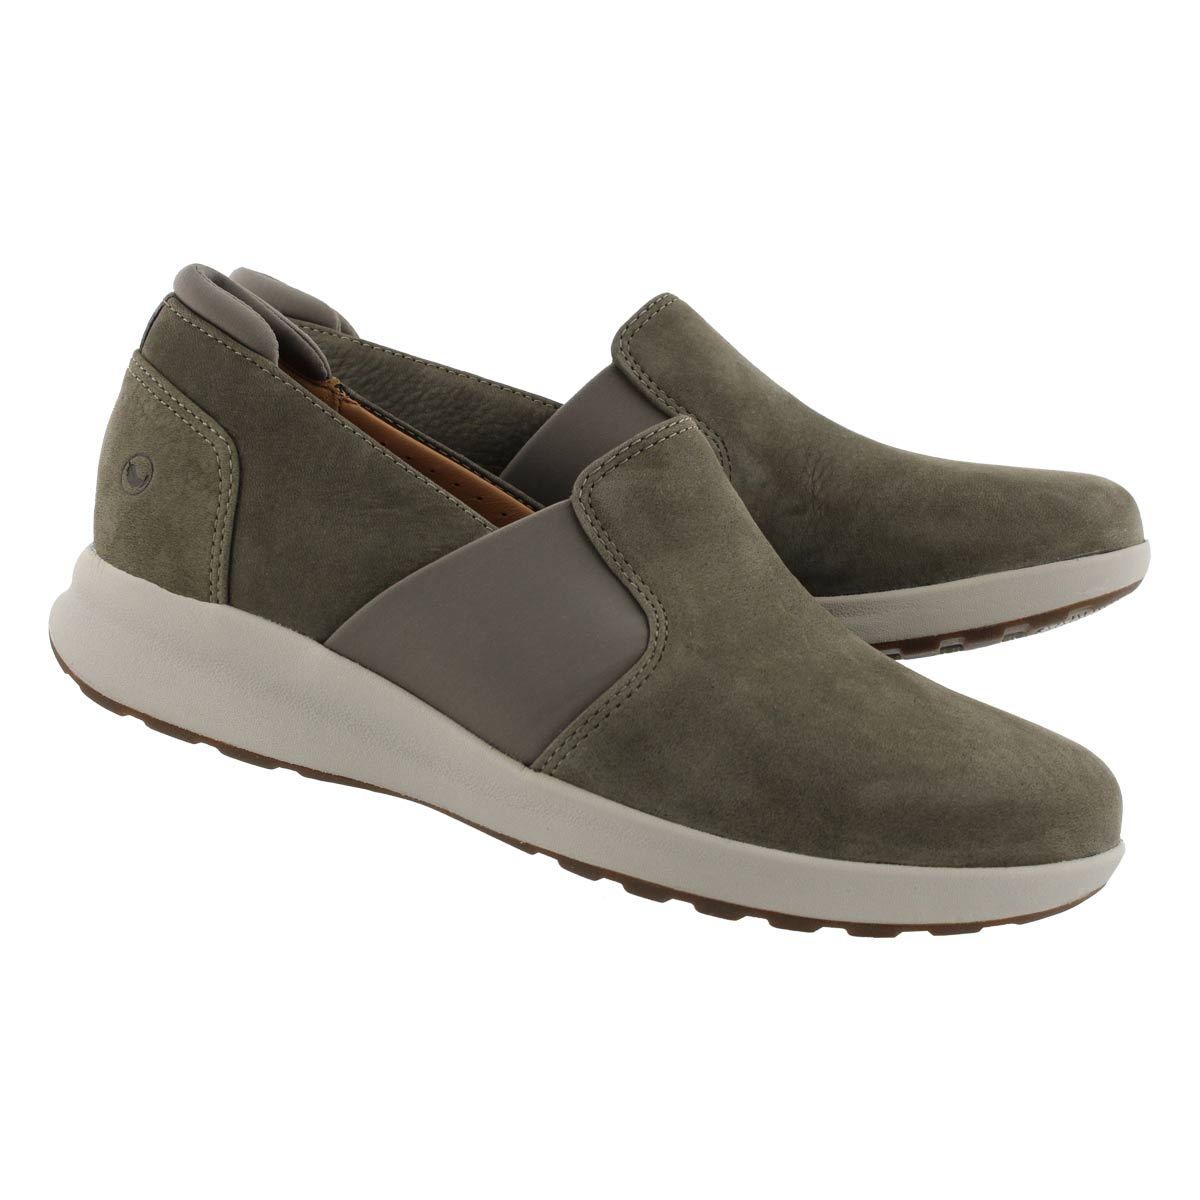 Lds Un Adorn Step taupe slip on